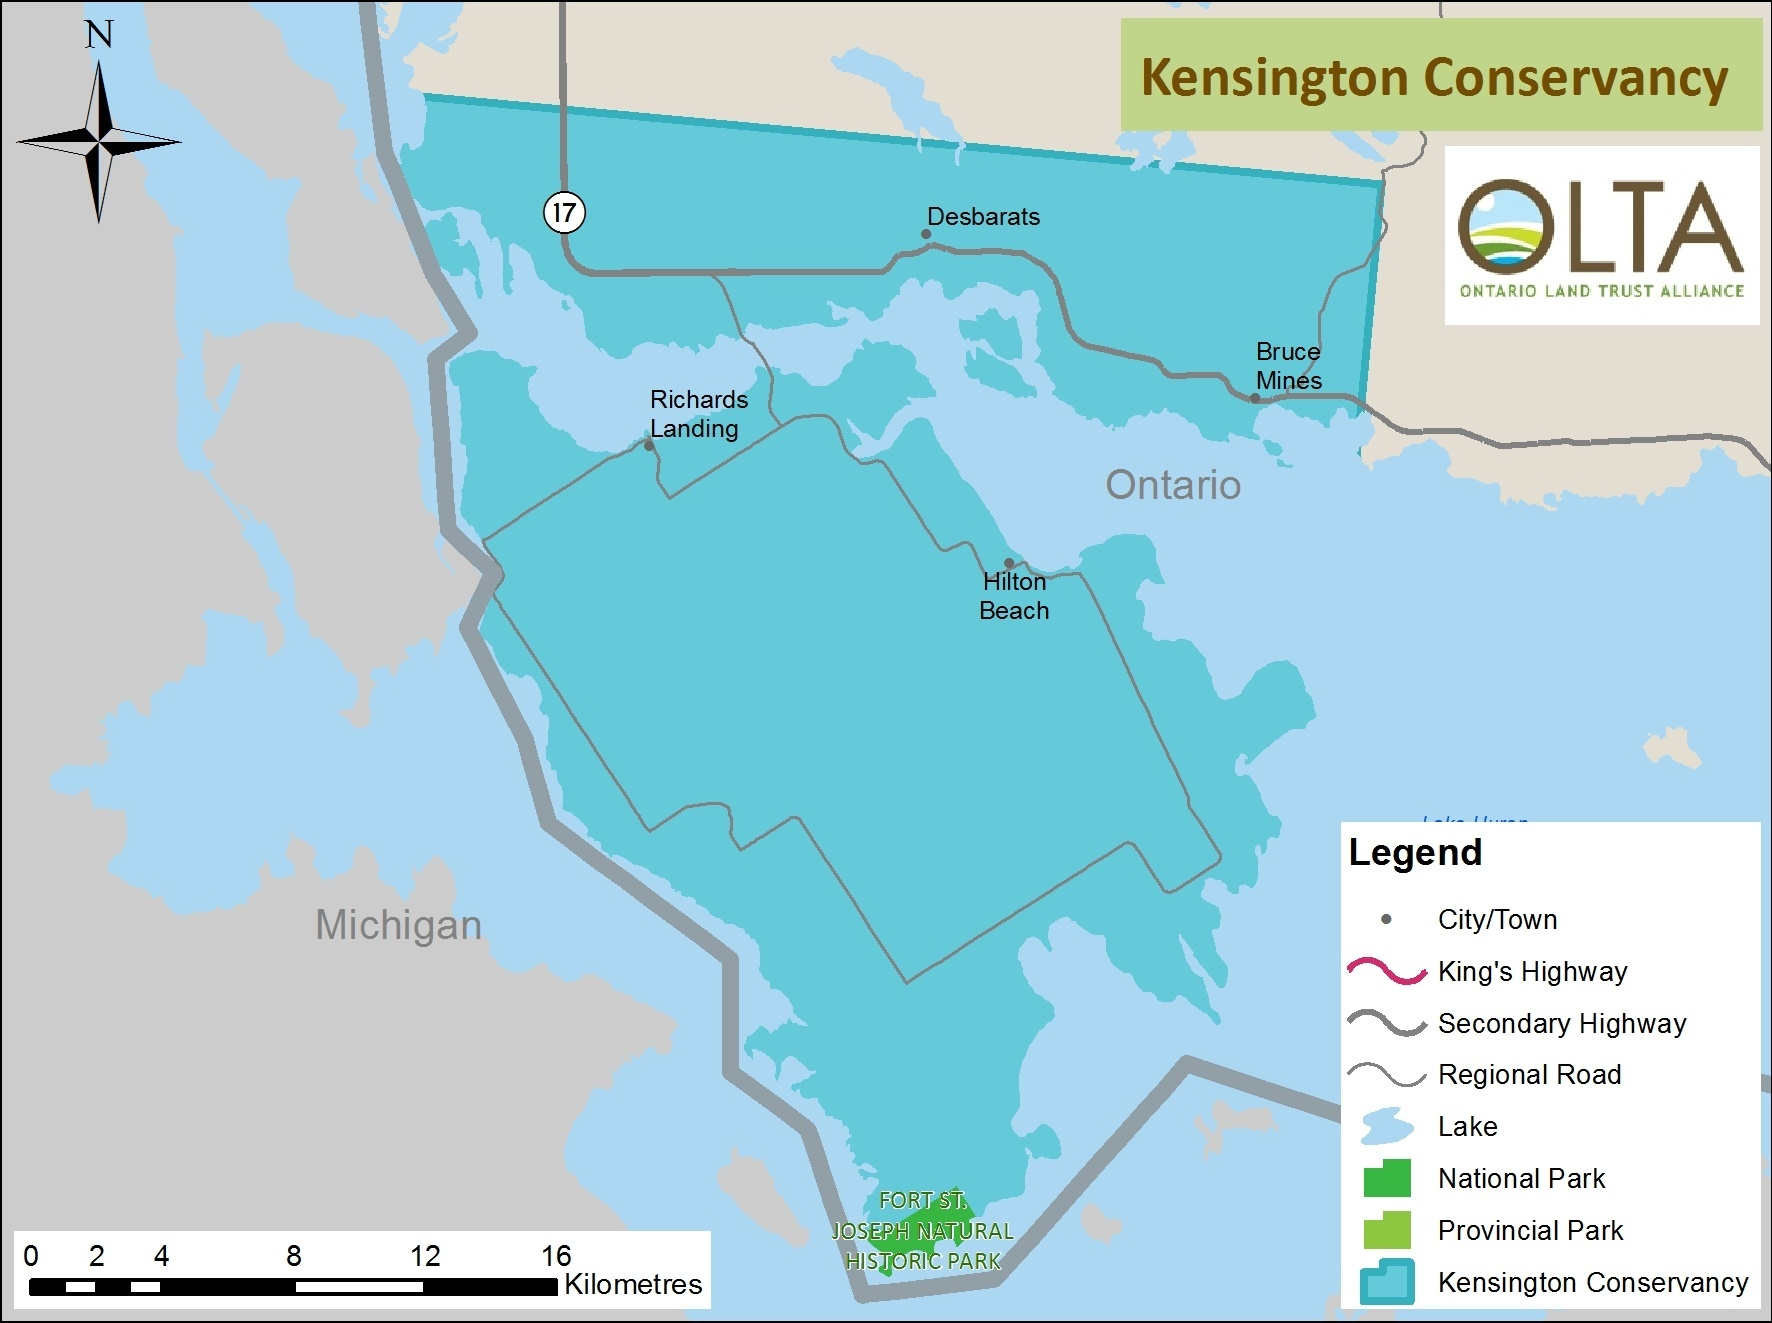 The Kensington Conservancy area of operations map